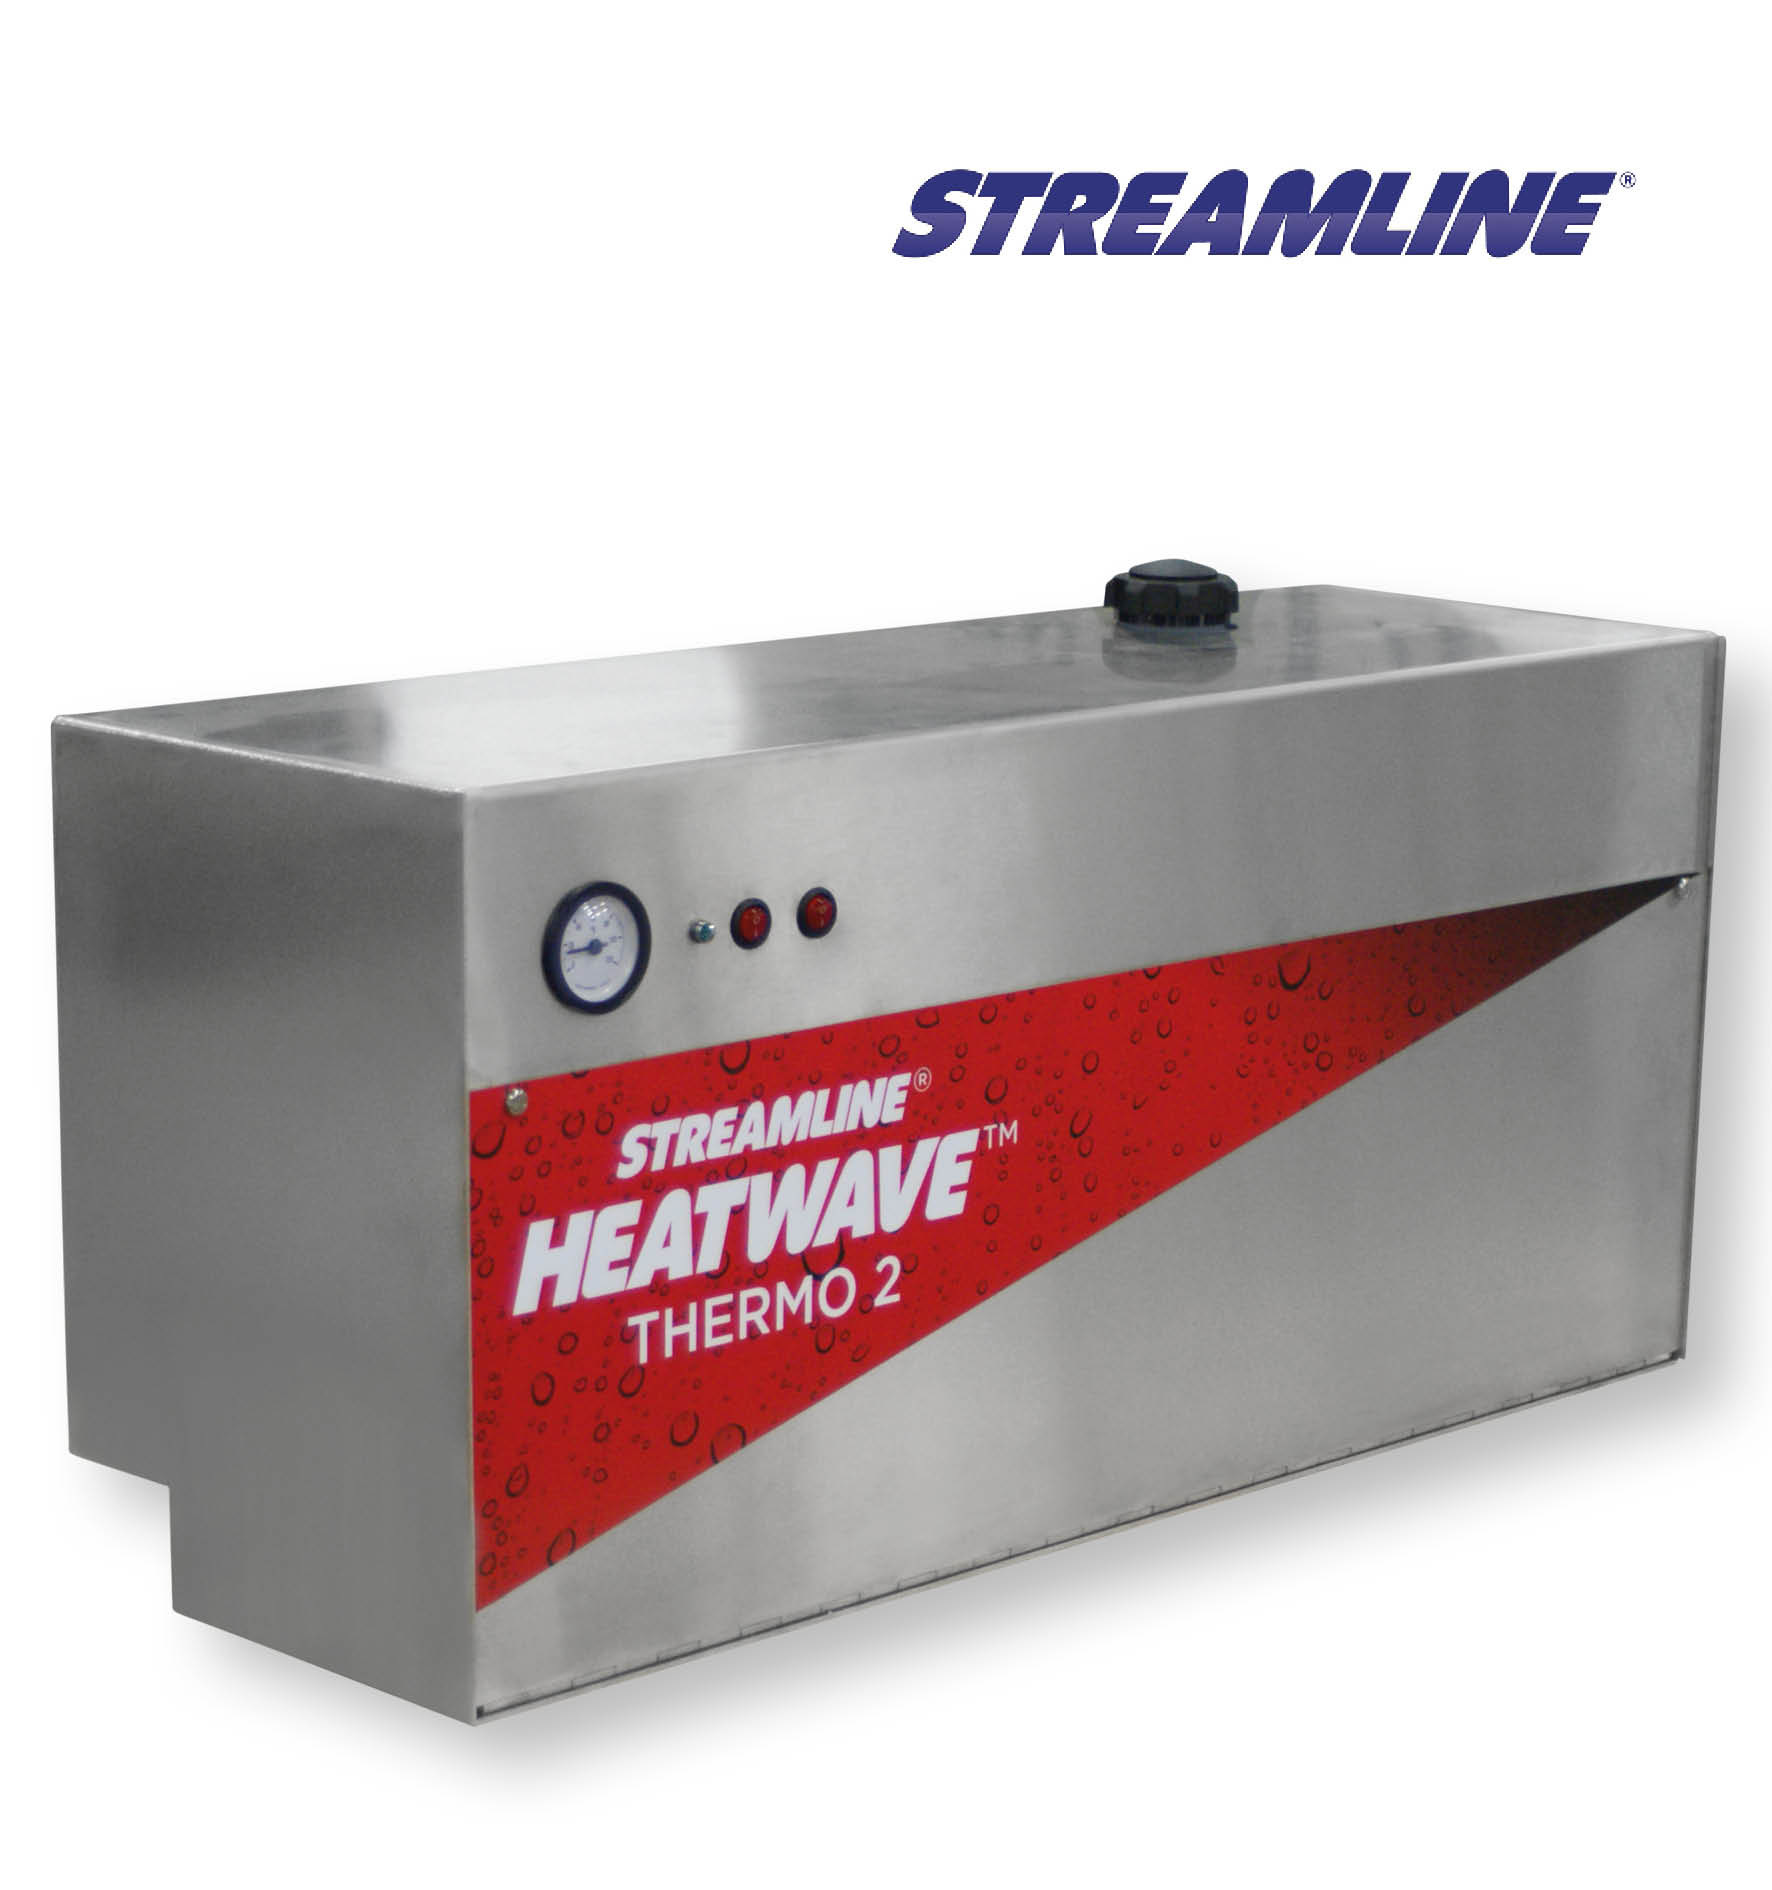 Streamline Heatwave Thermo 2 Horizontal 9KW Twin Operator Water Heater